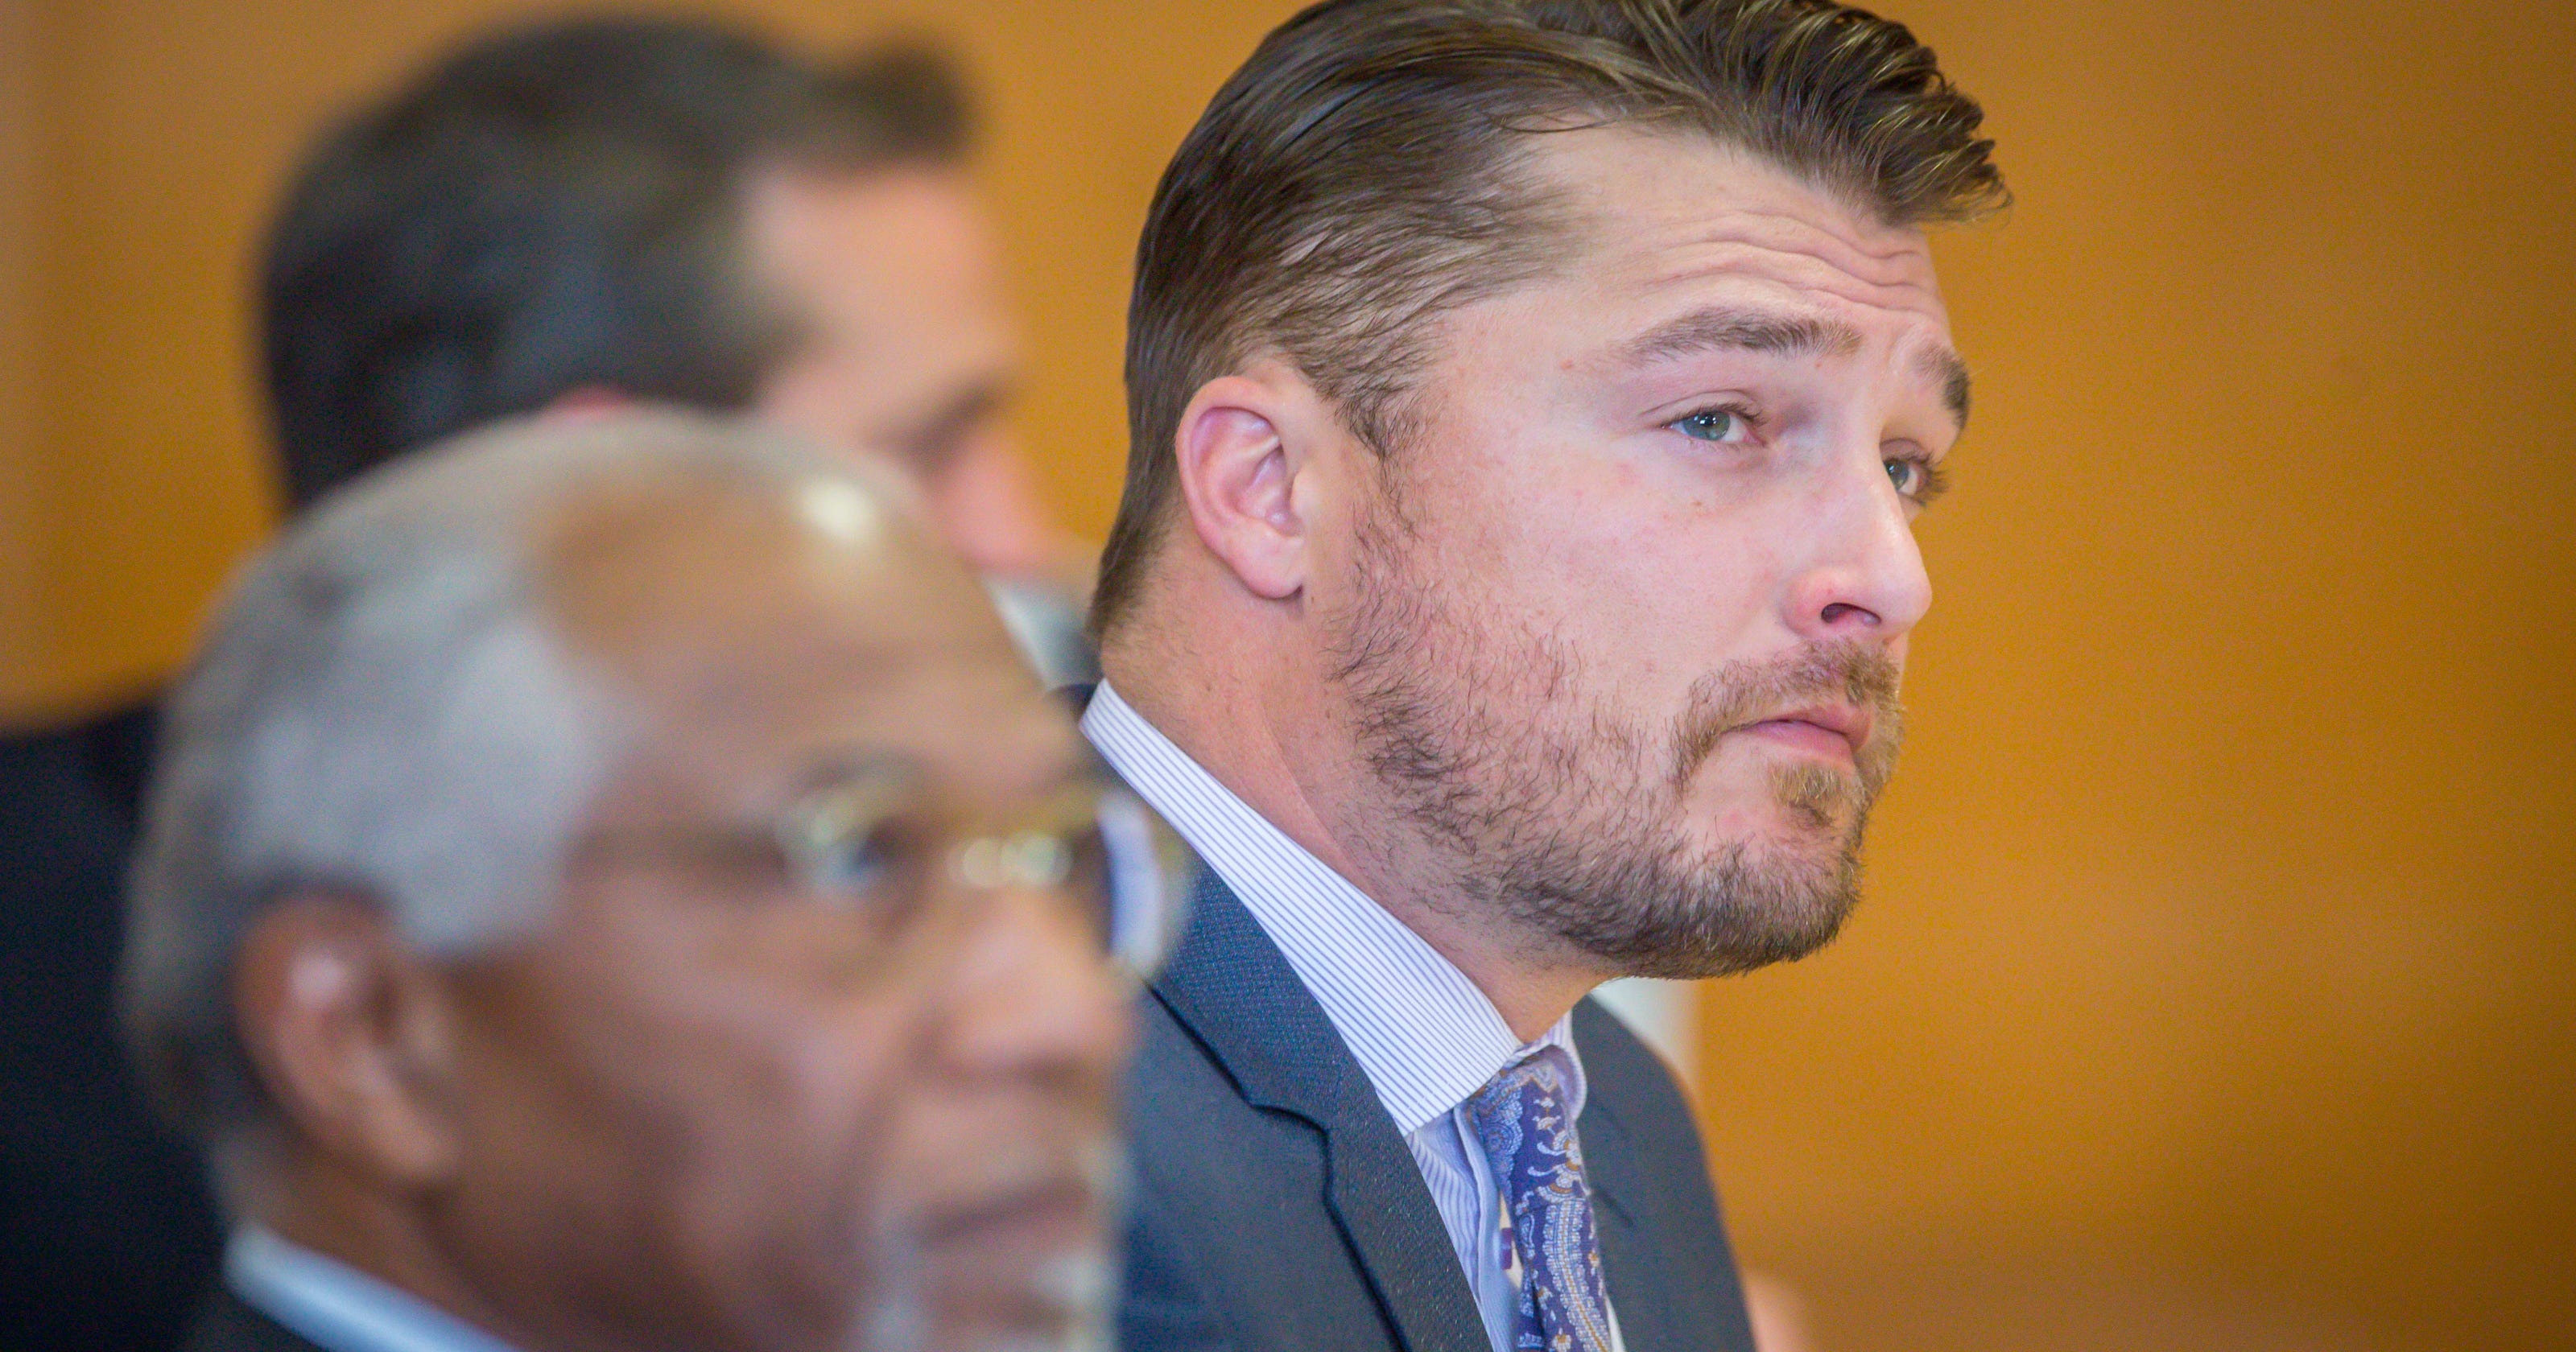 Bachelor' Chris Soules pleads guilty to aggravated